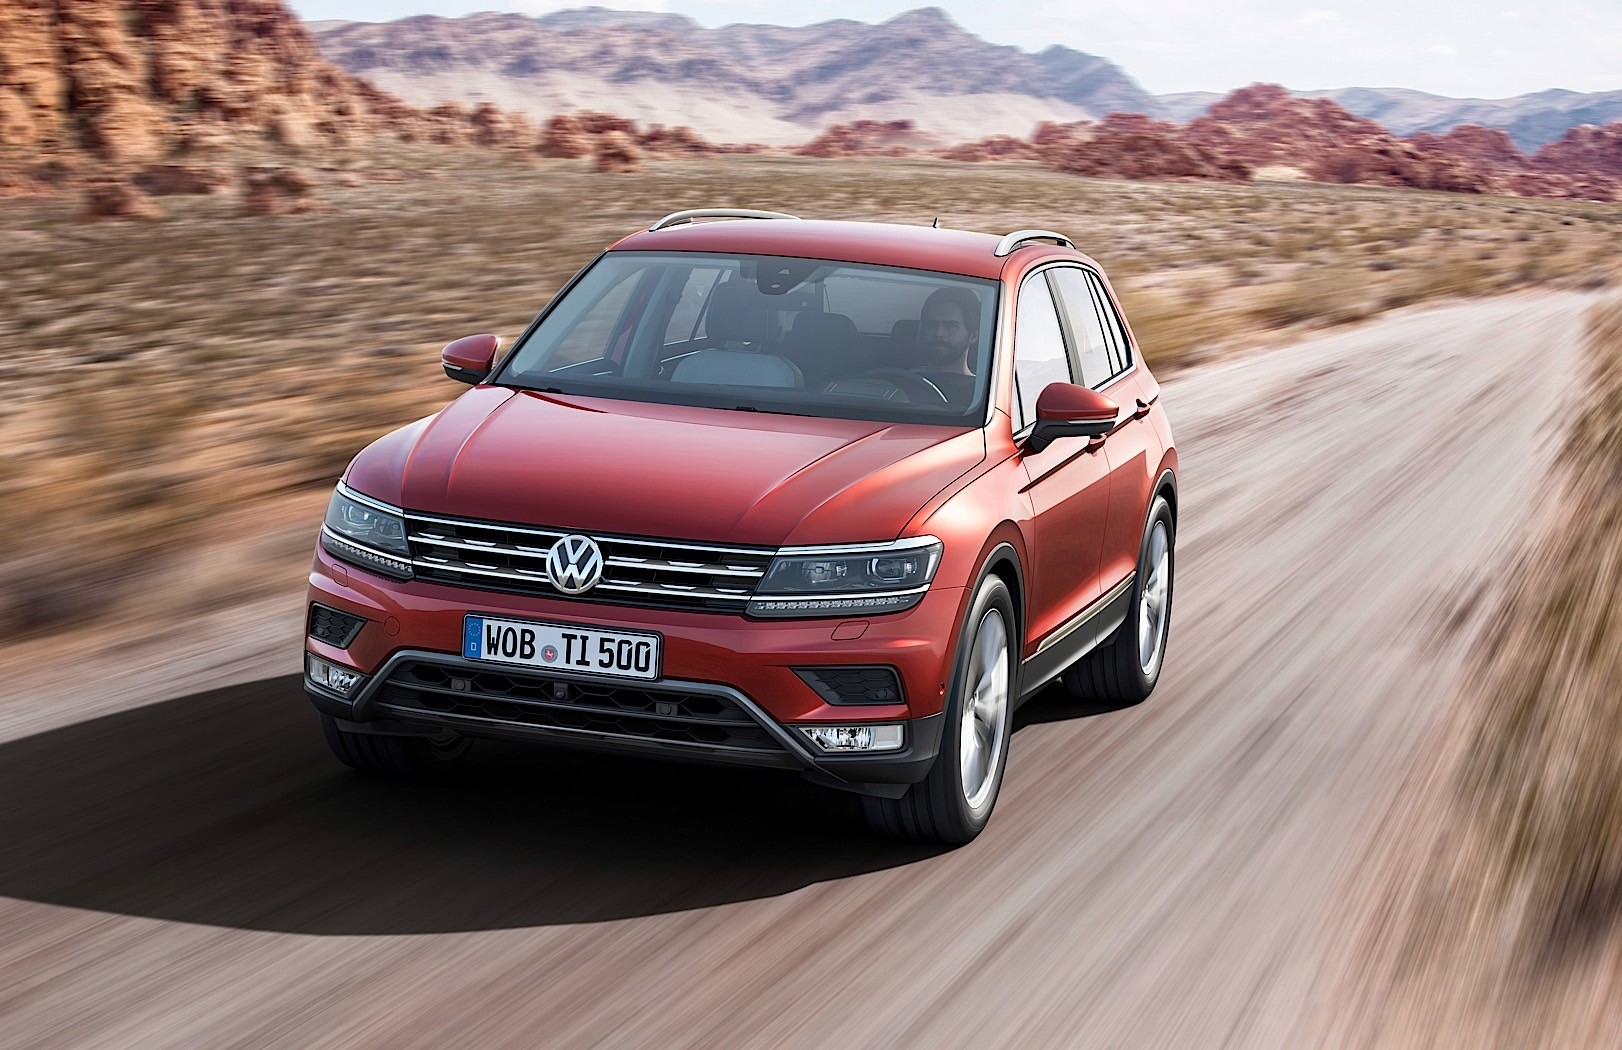 2016 volkswagen tiguan review autoevolution. Black Bedroom Furniture Sets. Home Design Ideas